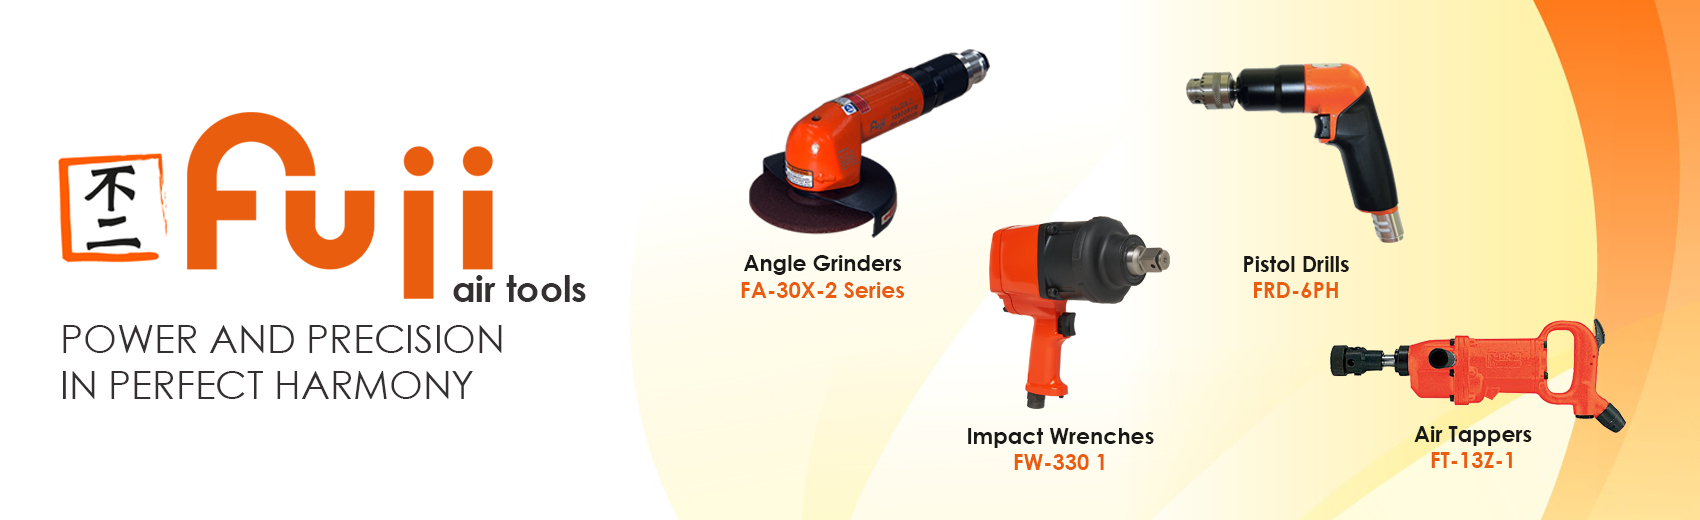 Fuji Air Tools | Pulse Wrenches | Angle Grinders | Air Saws | Needle Scalers